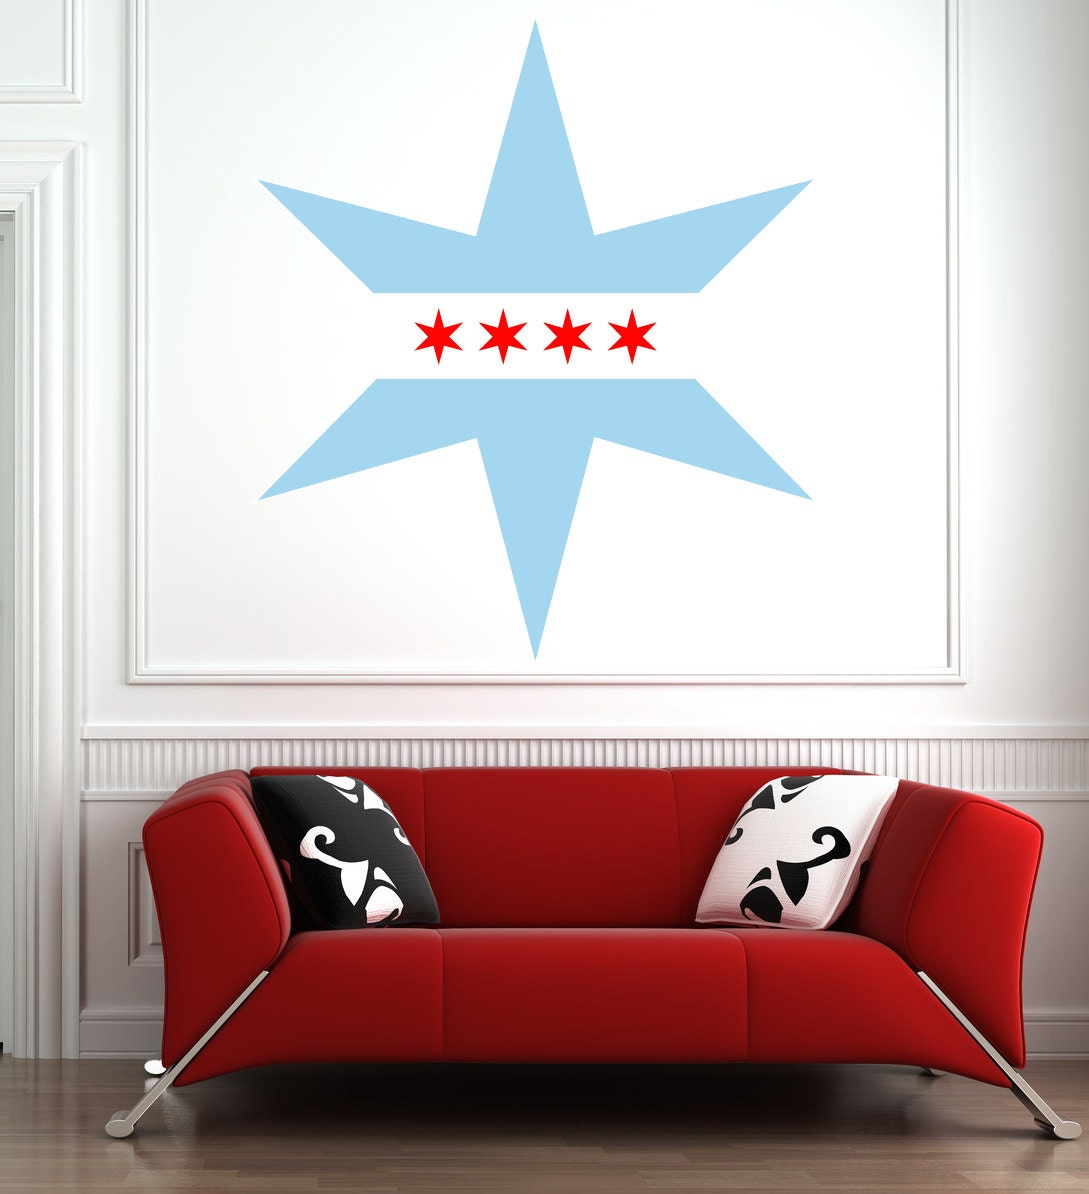 Chicago flag star wall decal by lavenderinkstudio on etsy for Star wall decals